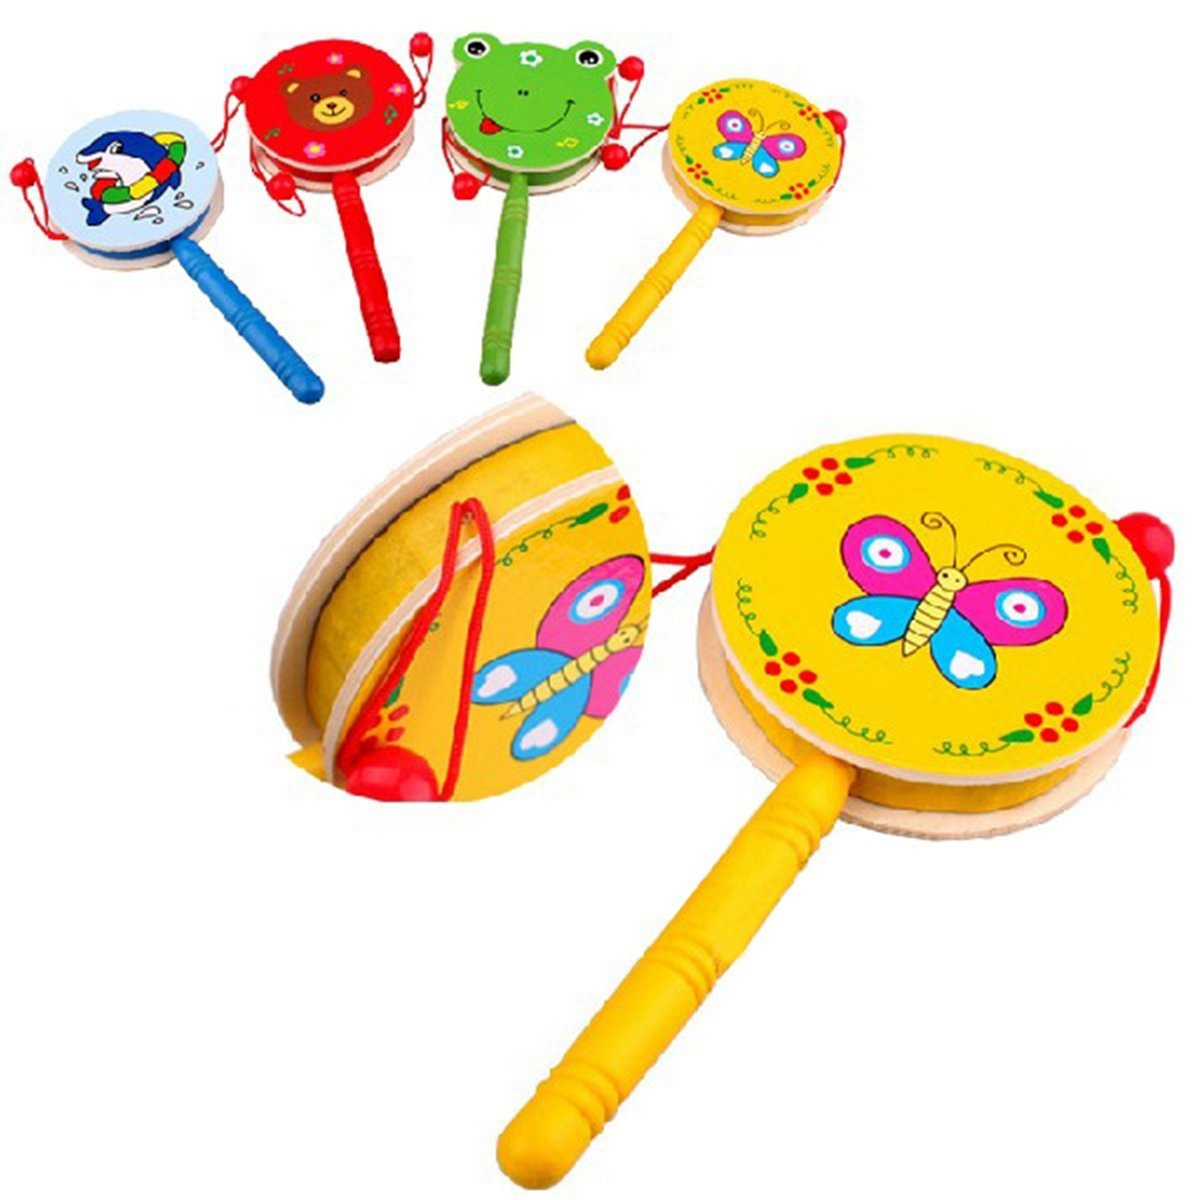 HOT-SALE-Baby-Kid-Wooden-Musical-Hand-Bell-Shaking-Rattle-Drum-Toy